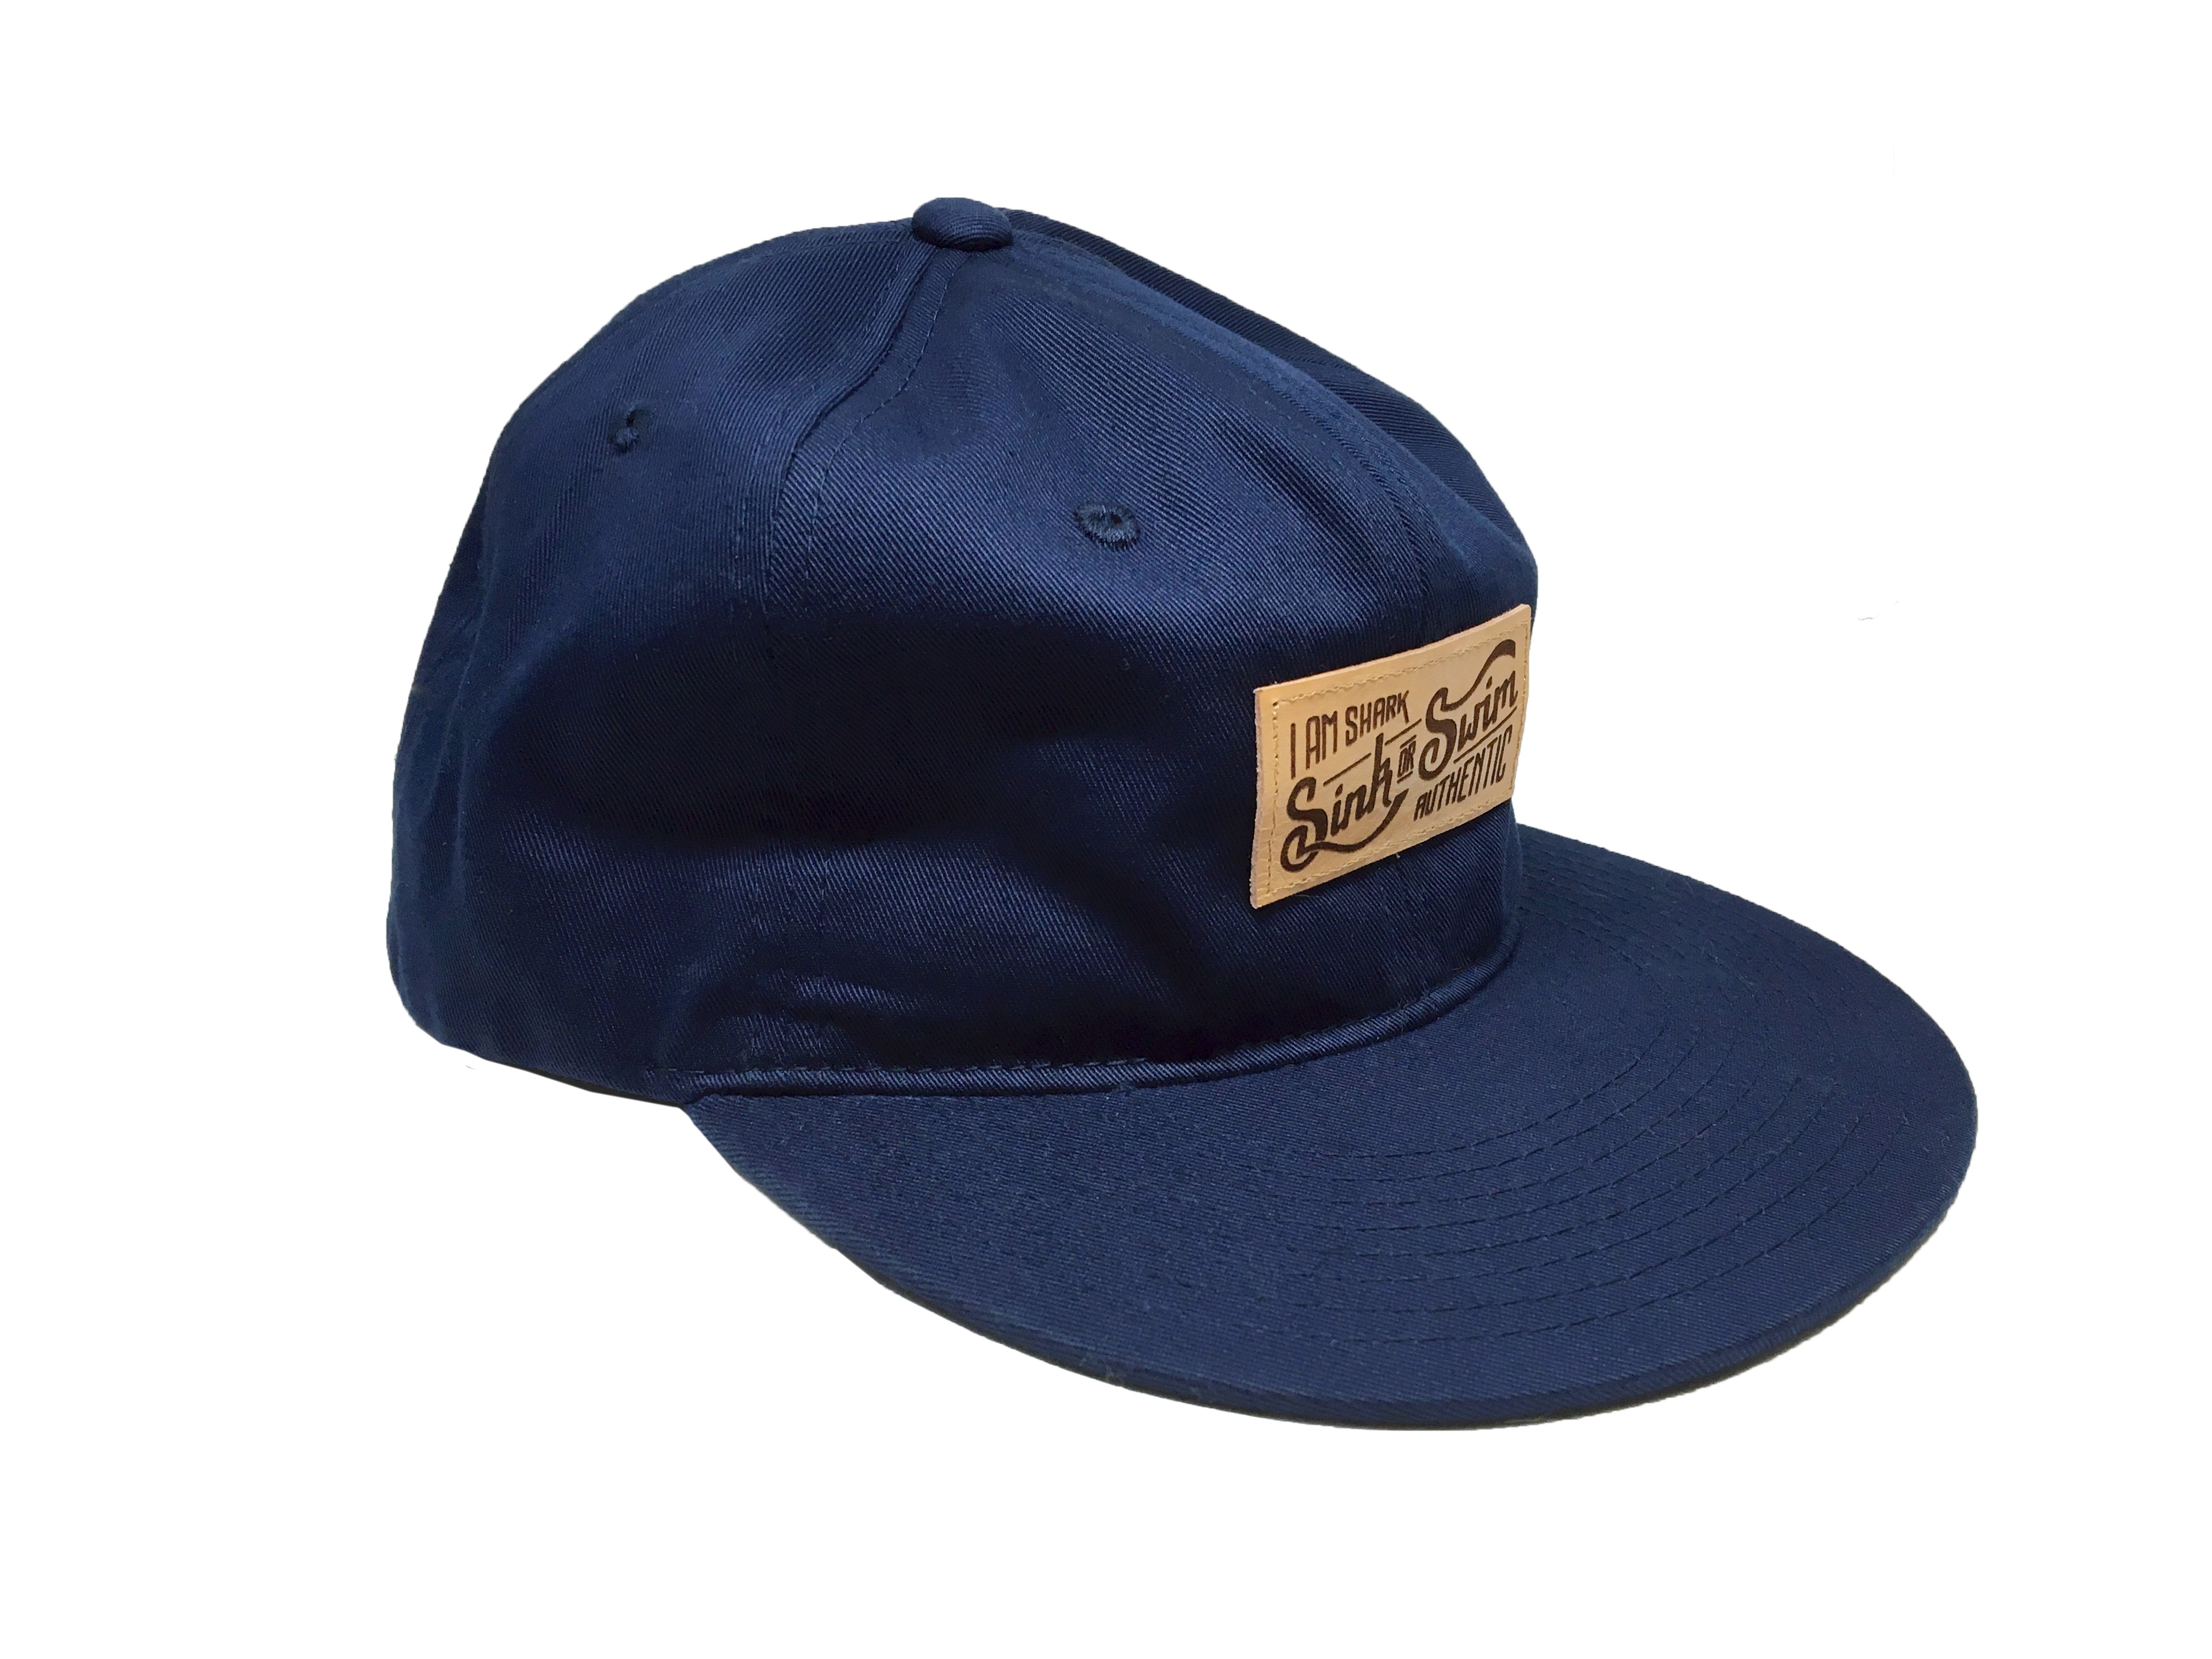 Relaxed Sink or Swim Snapback - Navy